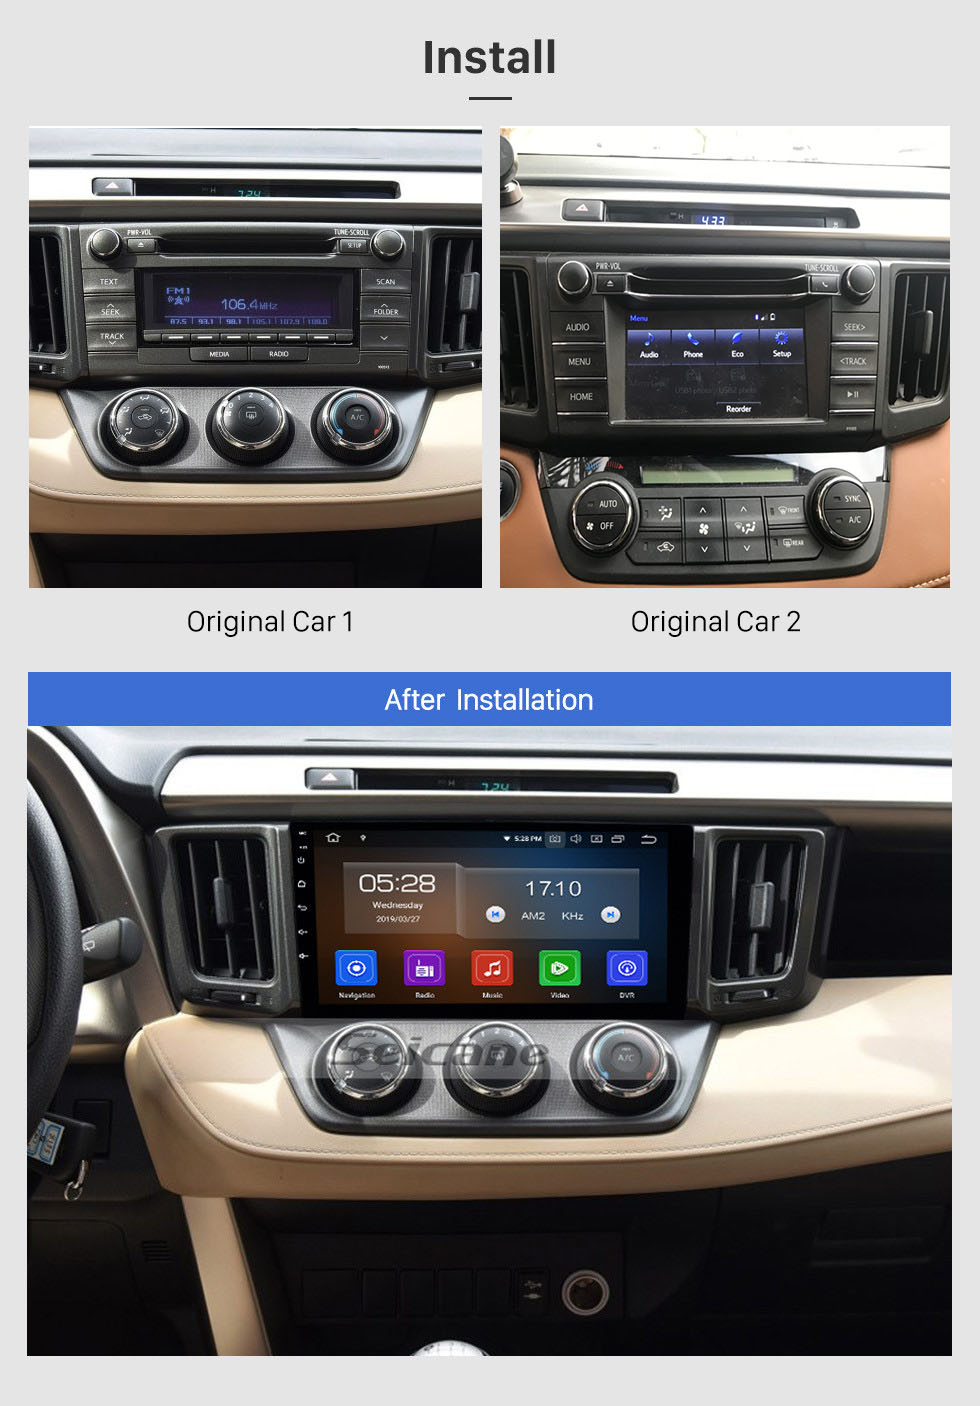 Seicane 9 Inch Android 10.0 GPS Navigation System Radio For 2013 2014 2015 2016 2017 2018 Toyota RAV4 LHD Support DVD Player Remote Control Bluetooth Touch Screen TV tuner